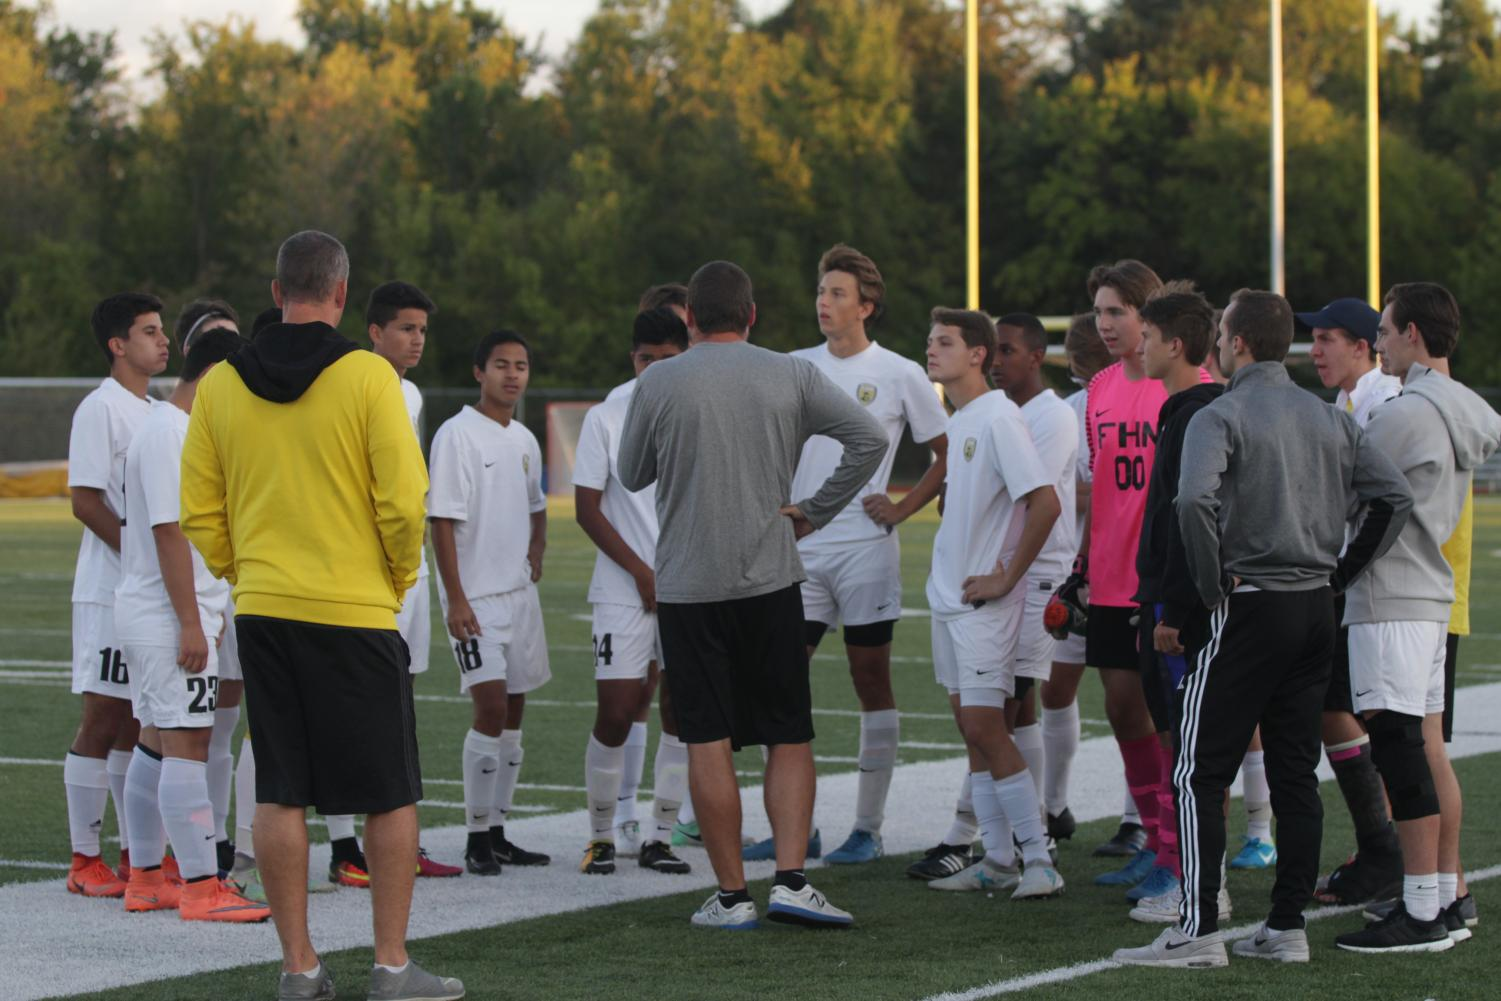 Coaches Larry Scheller [in yellow] and Zach Fettig talk to the soccer team before playing against CBC